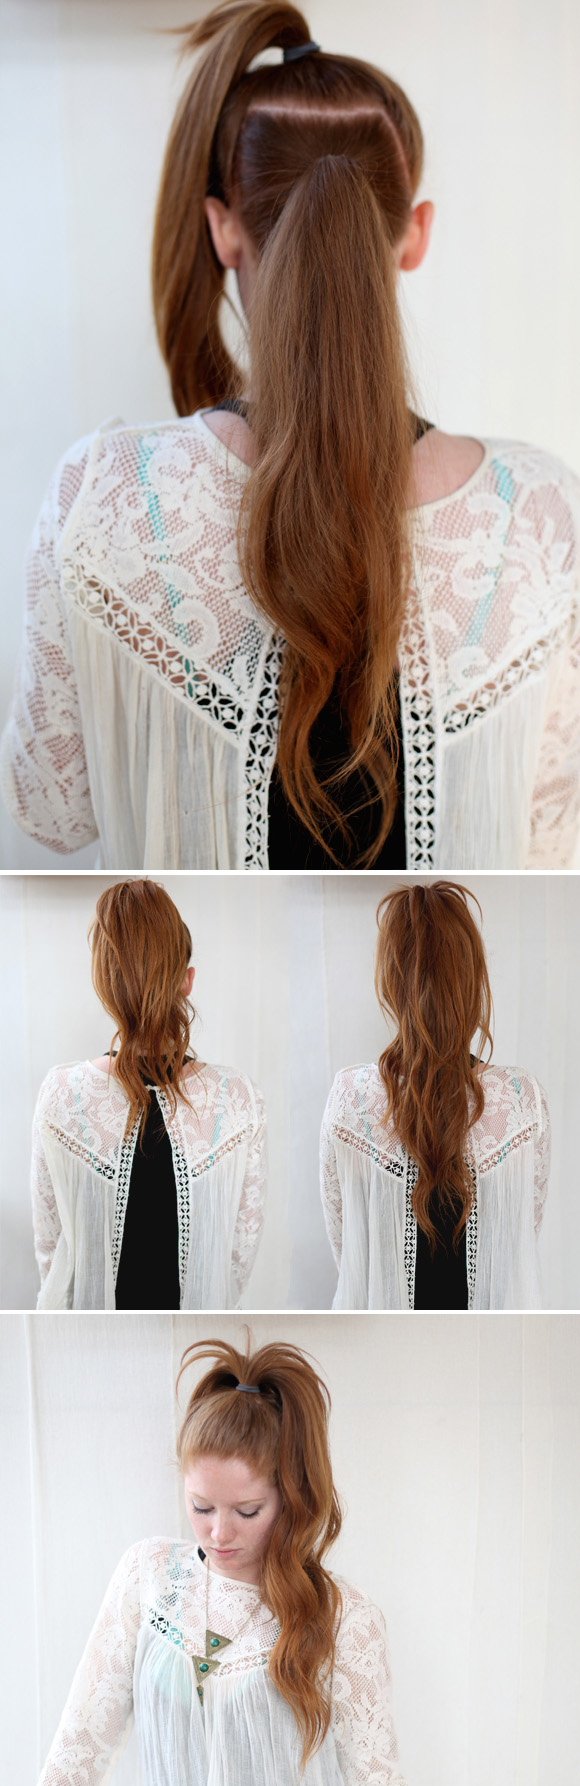 The illusory crazy long mane ponytail